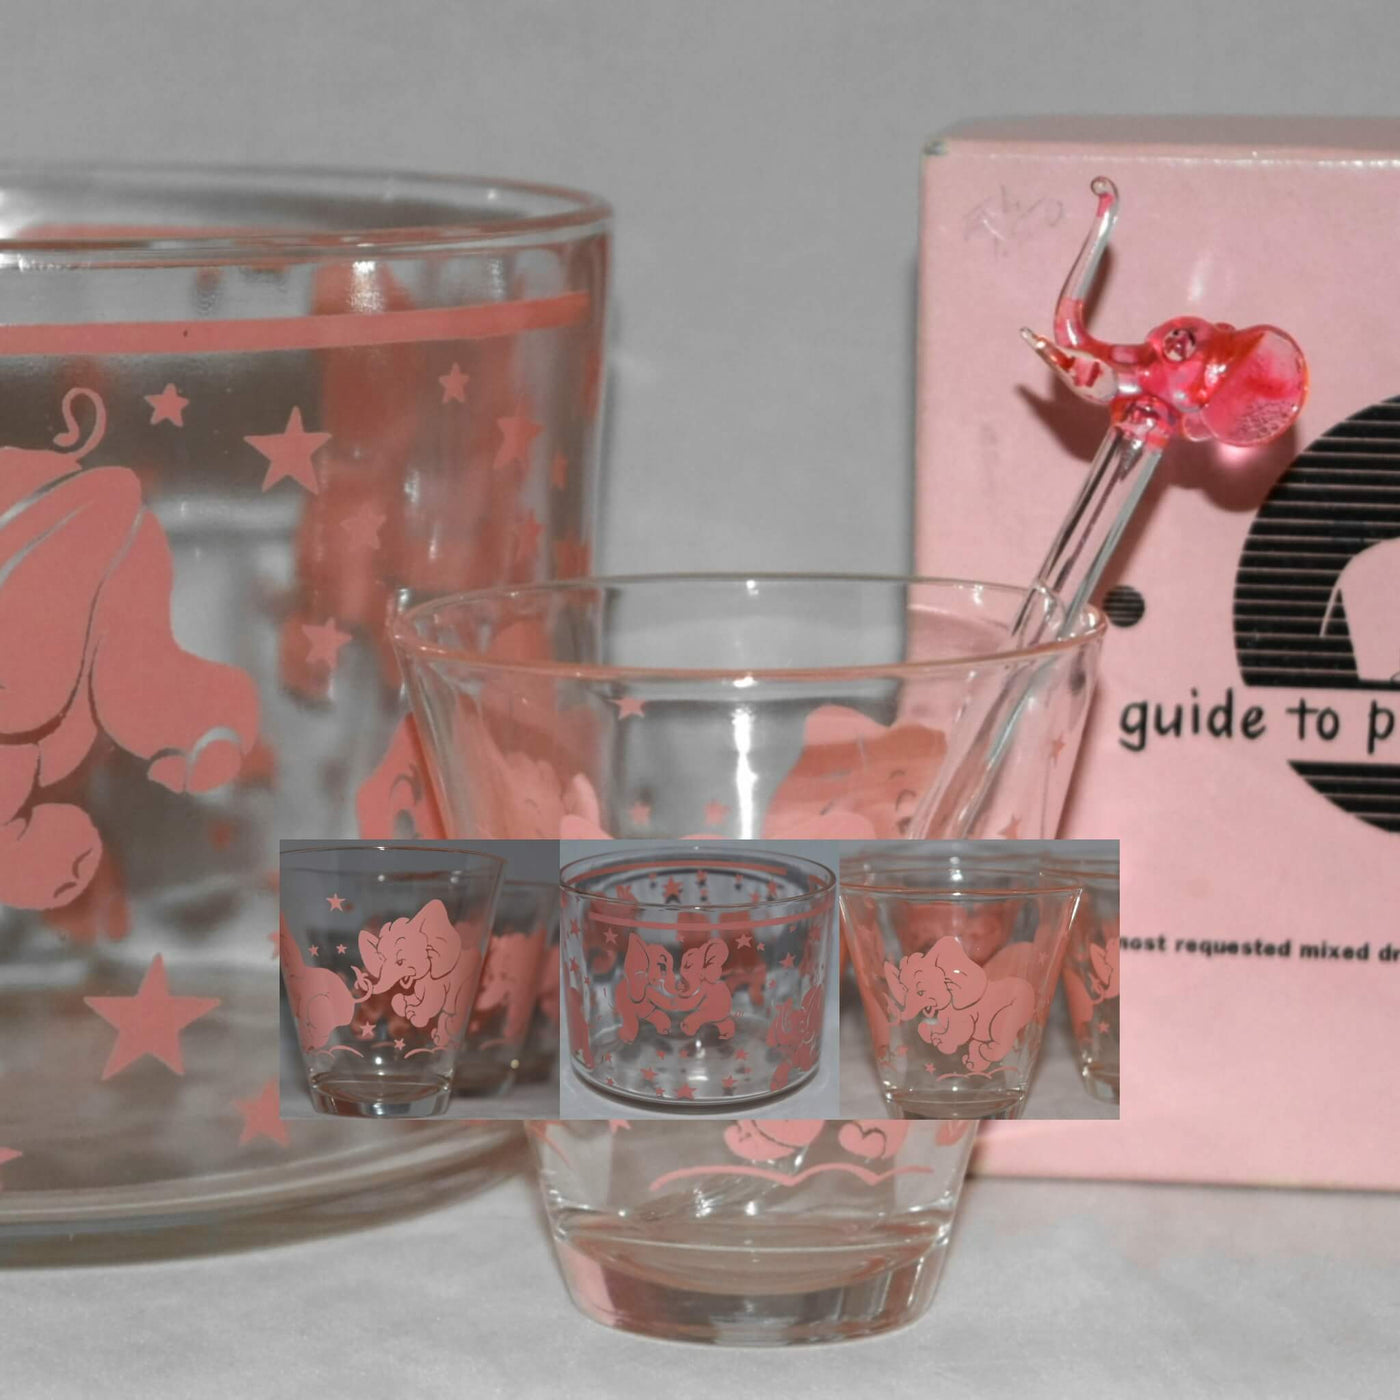 Description: Vintage Barware ...